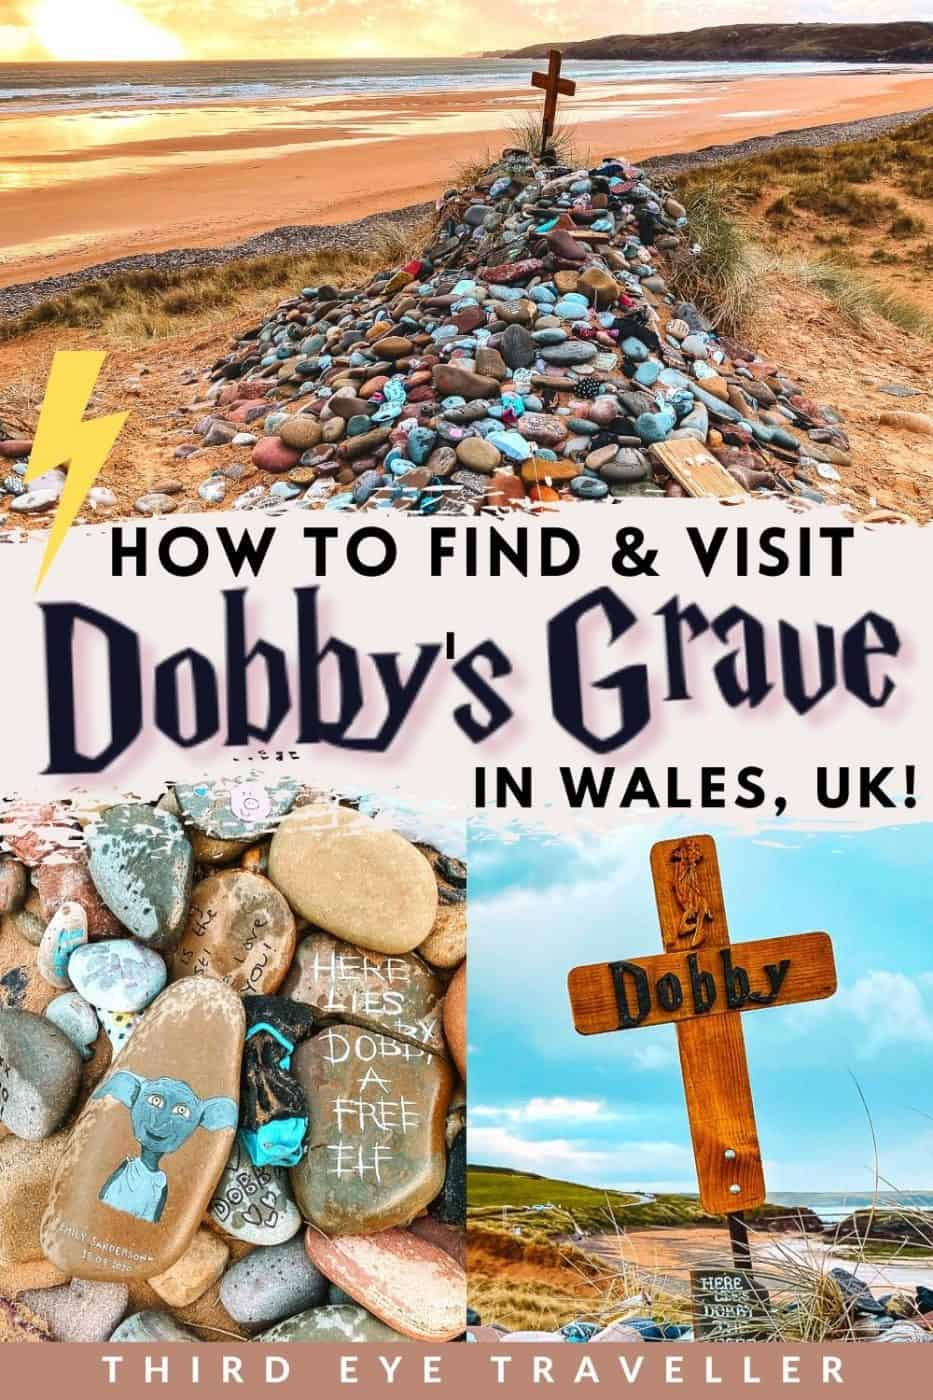 How to find Dobby's Grave in Freshwater West Harry Potter Beach Wales